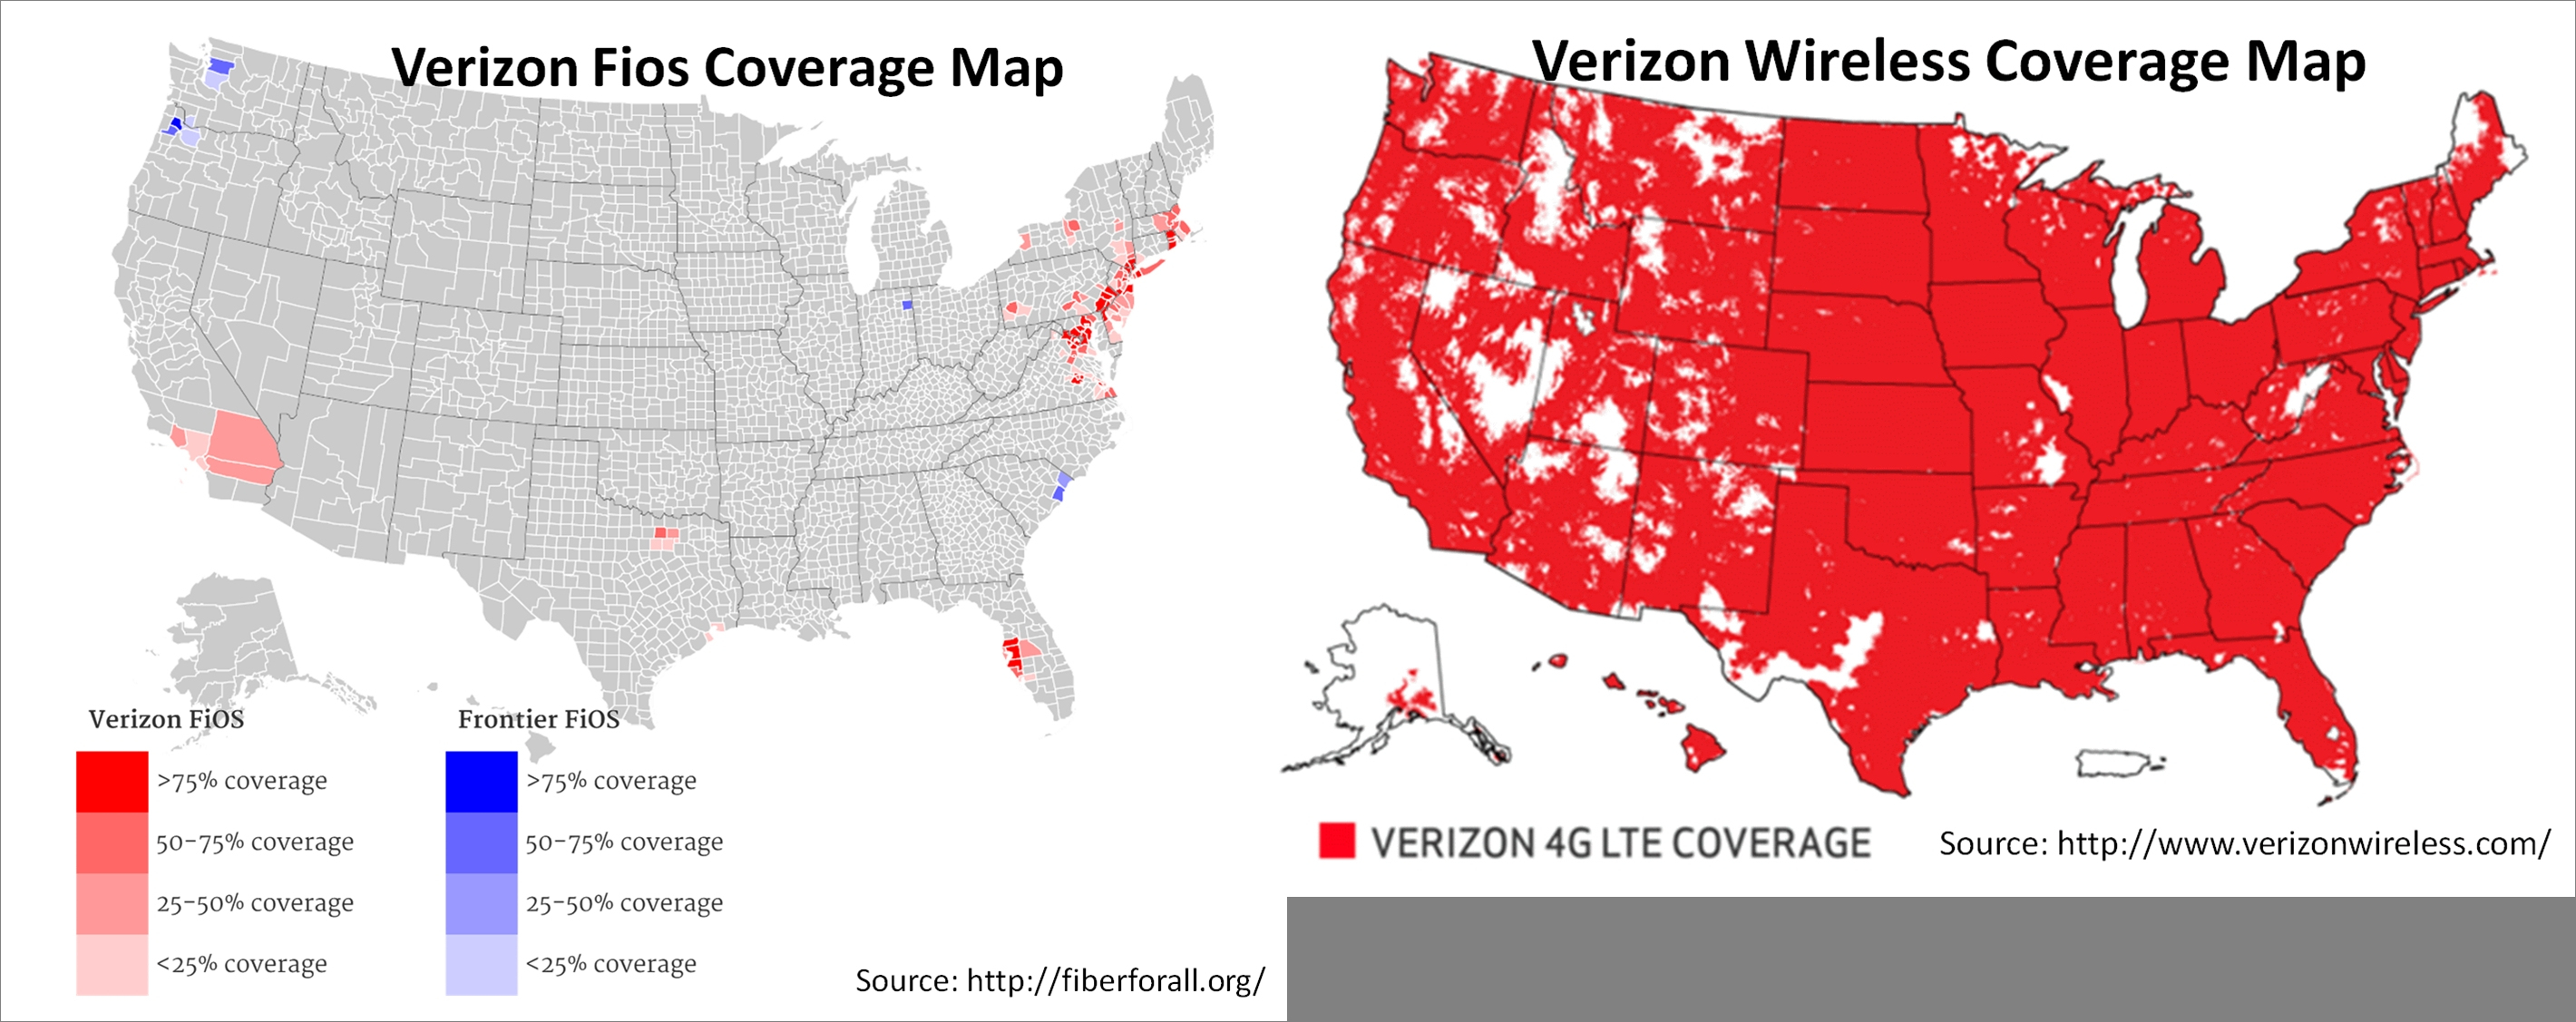 Reference Of Map With States. Verizon Fios Coverage Map - Reference - Verizon Fios Texas Coverage Map